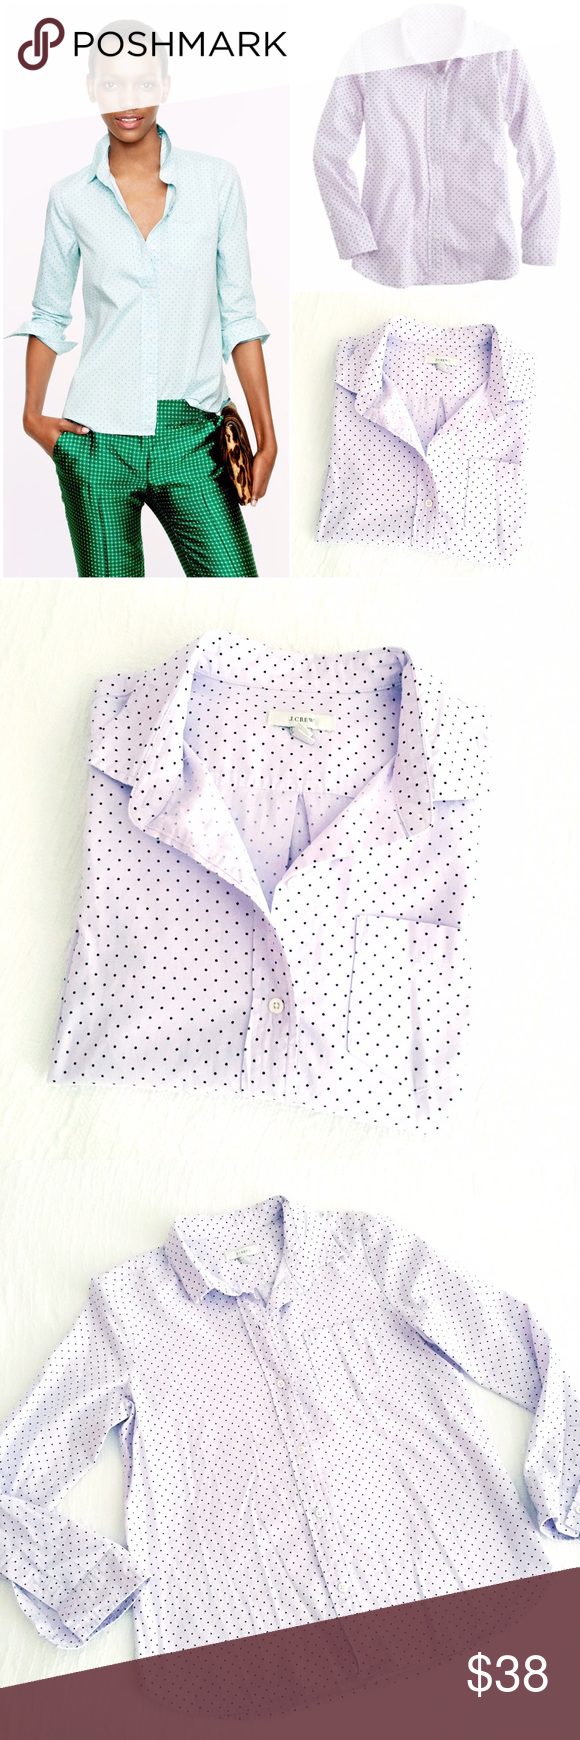 j.crew shrunken shirt in lilac dot oxford This feminine shirt ha shaped seams at the bust & a shrunken fit - which is just a touch slimmer than our boy shirt & has slightly shorter sleeves & length. Crafted in a washed oxford - our designers have this classic fabric an unexpected twist with contrast dots. Cotton, long sleeves, chest pocket, functional cuffs, machine wash. No flaws to note, in gently worn condition J. Crew Tops Button Down Shirts